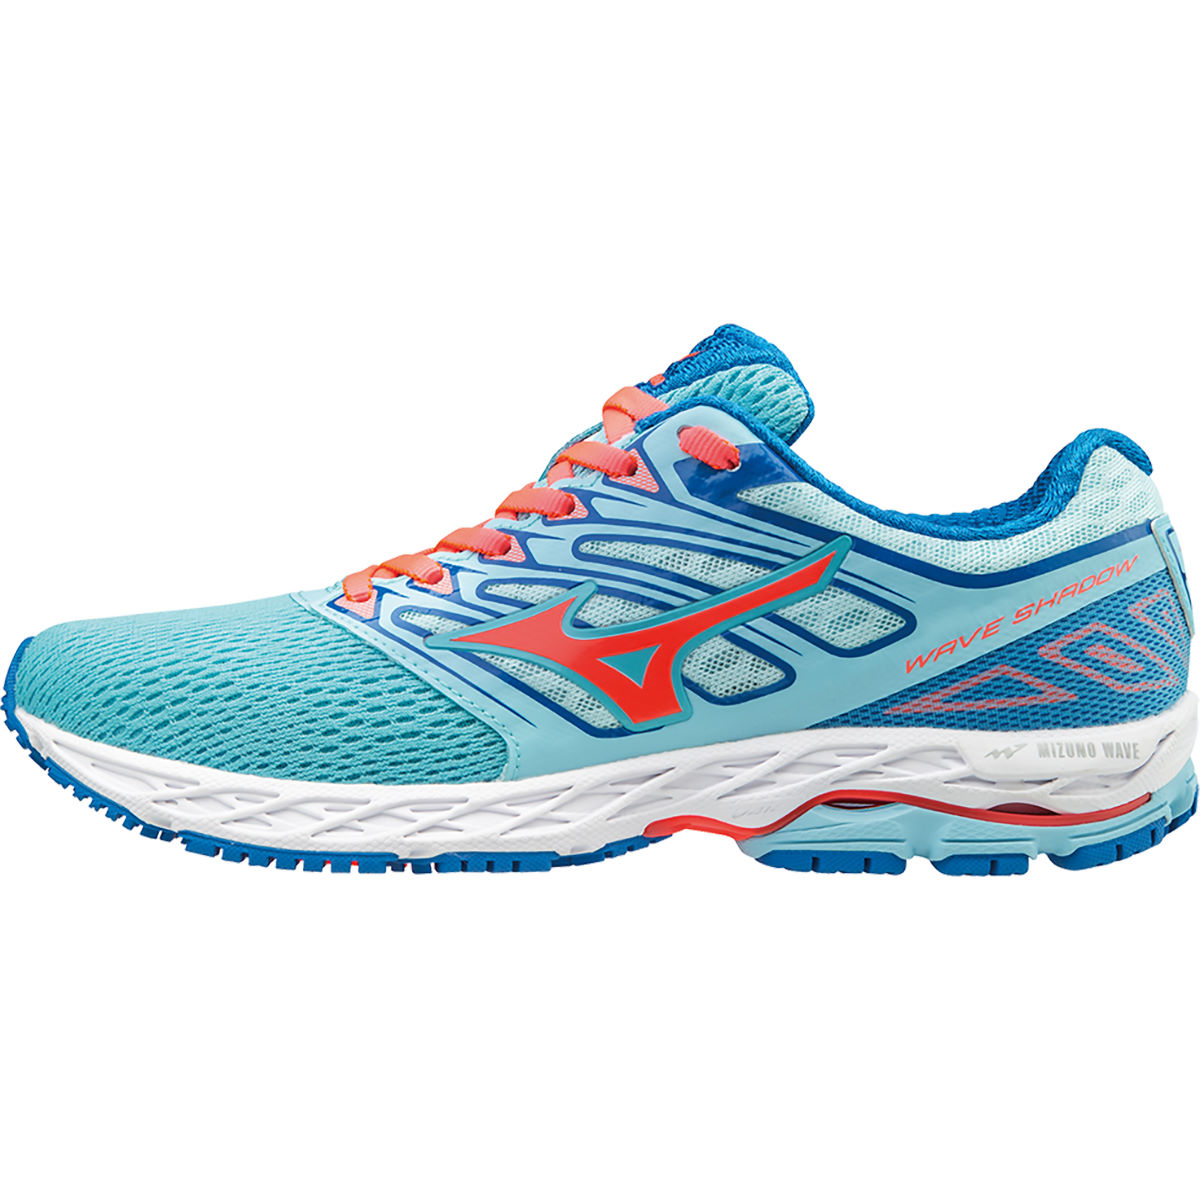 Chaussures Femme Mizuno Wave Shadow - UK 4 BlueTopaz/FieryCoral